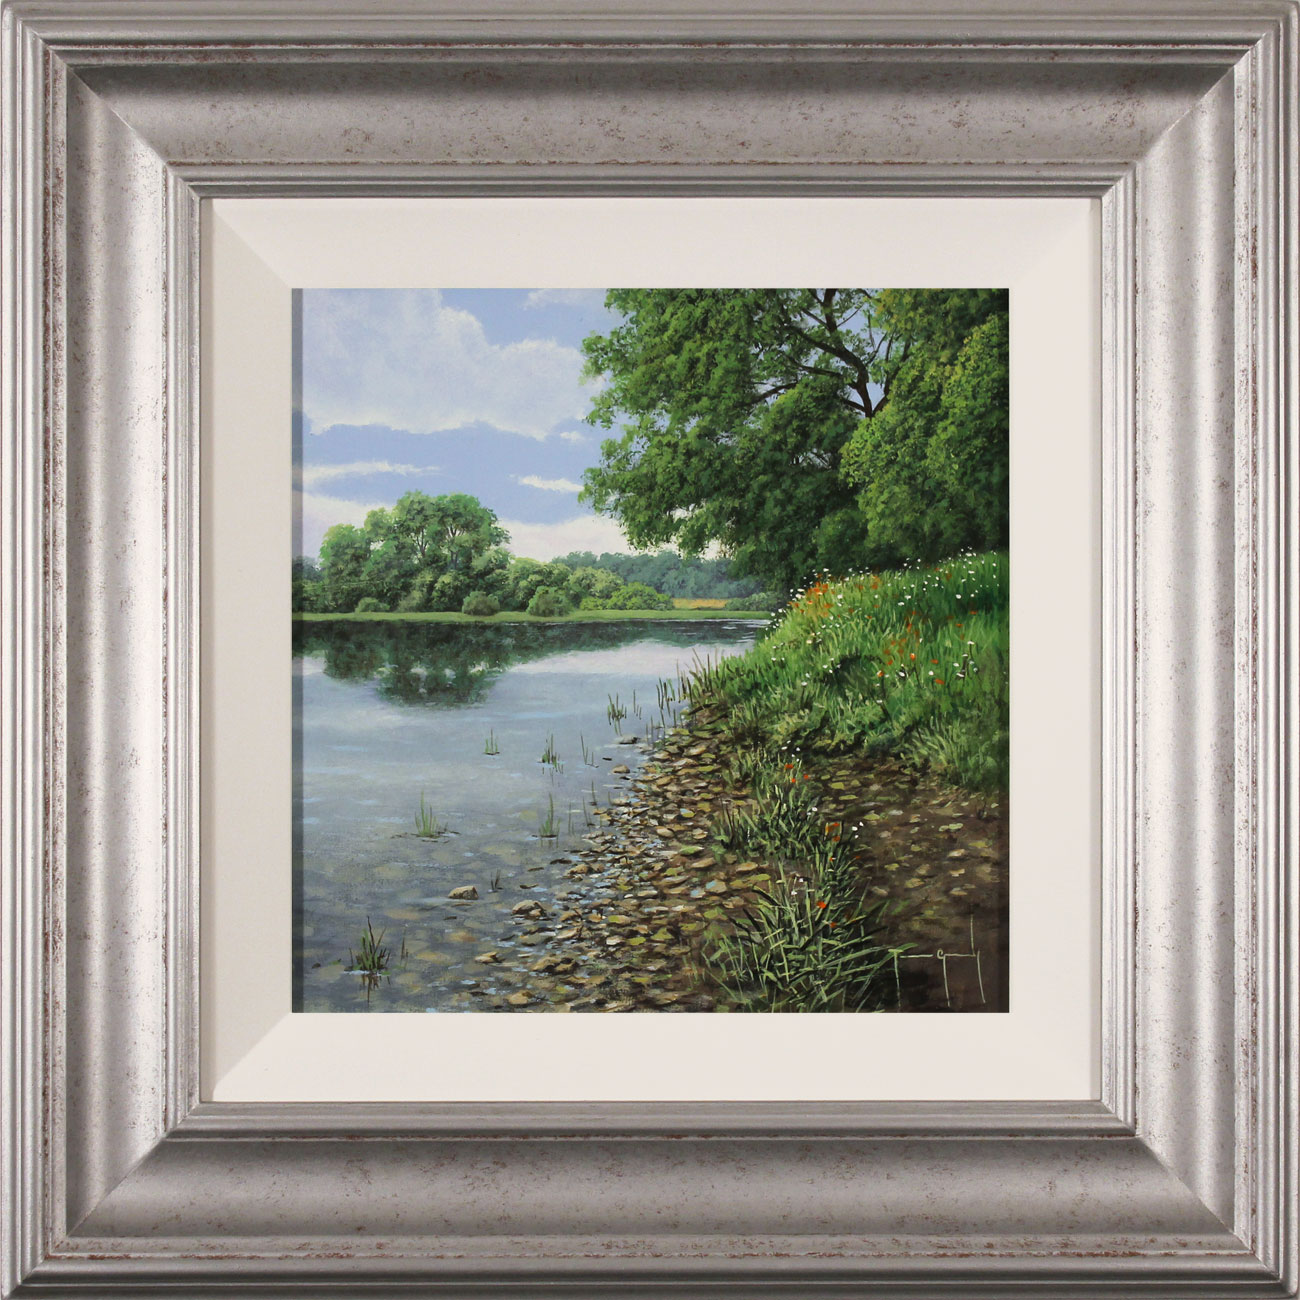 Terry Grundy, Original oil painting on panel, Calm of the River Click to enlarge